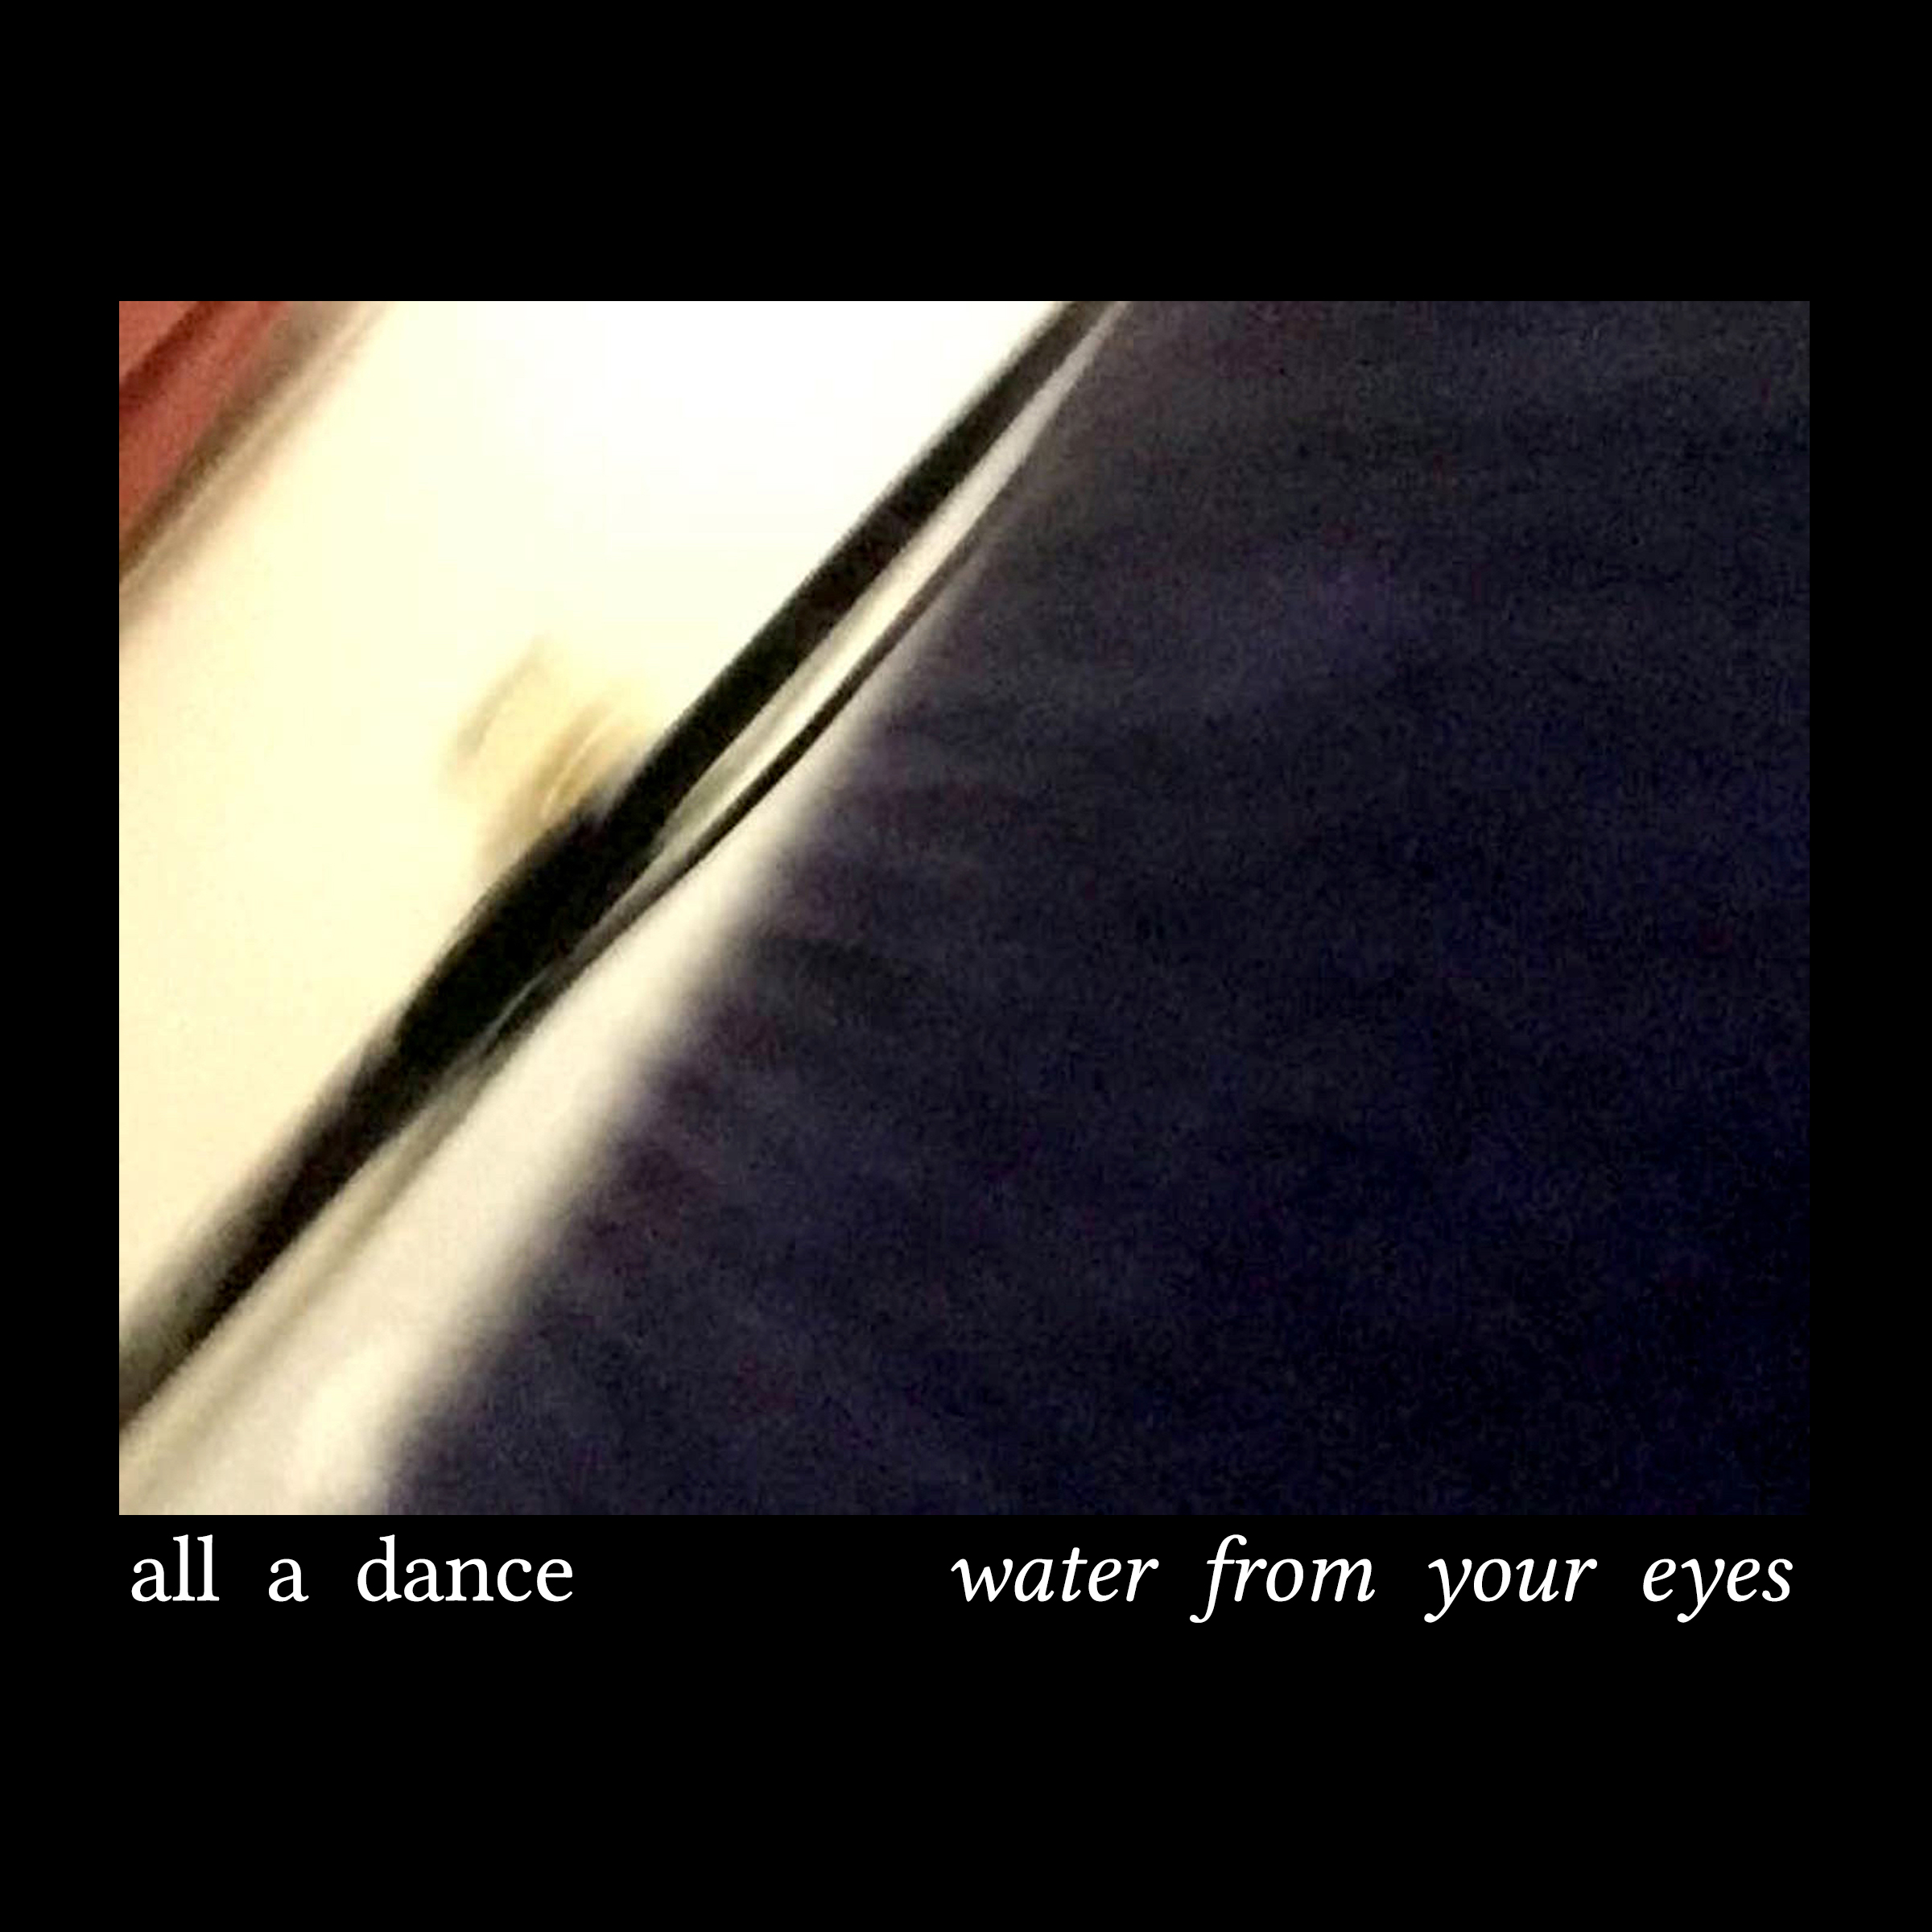 Water From Your Eyes cover.jpg